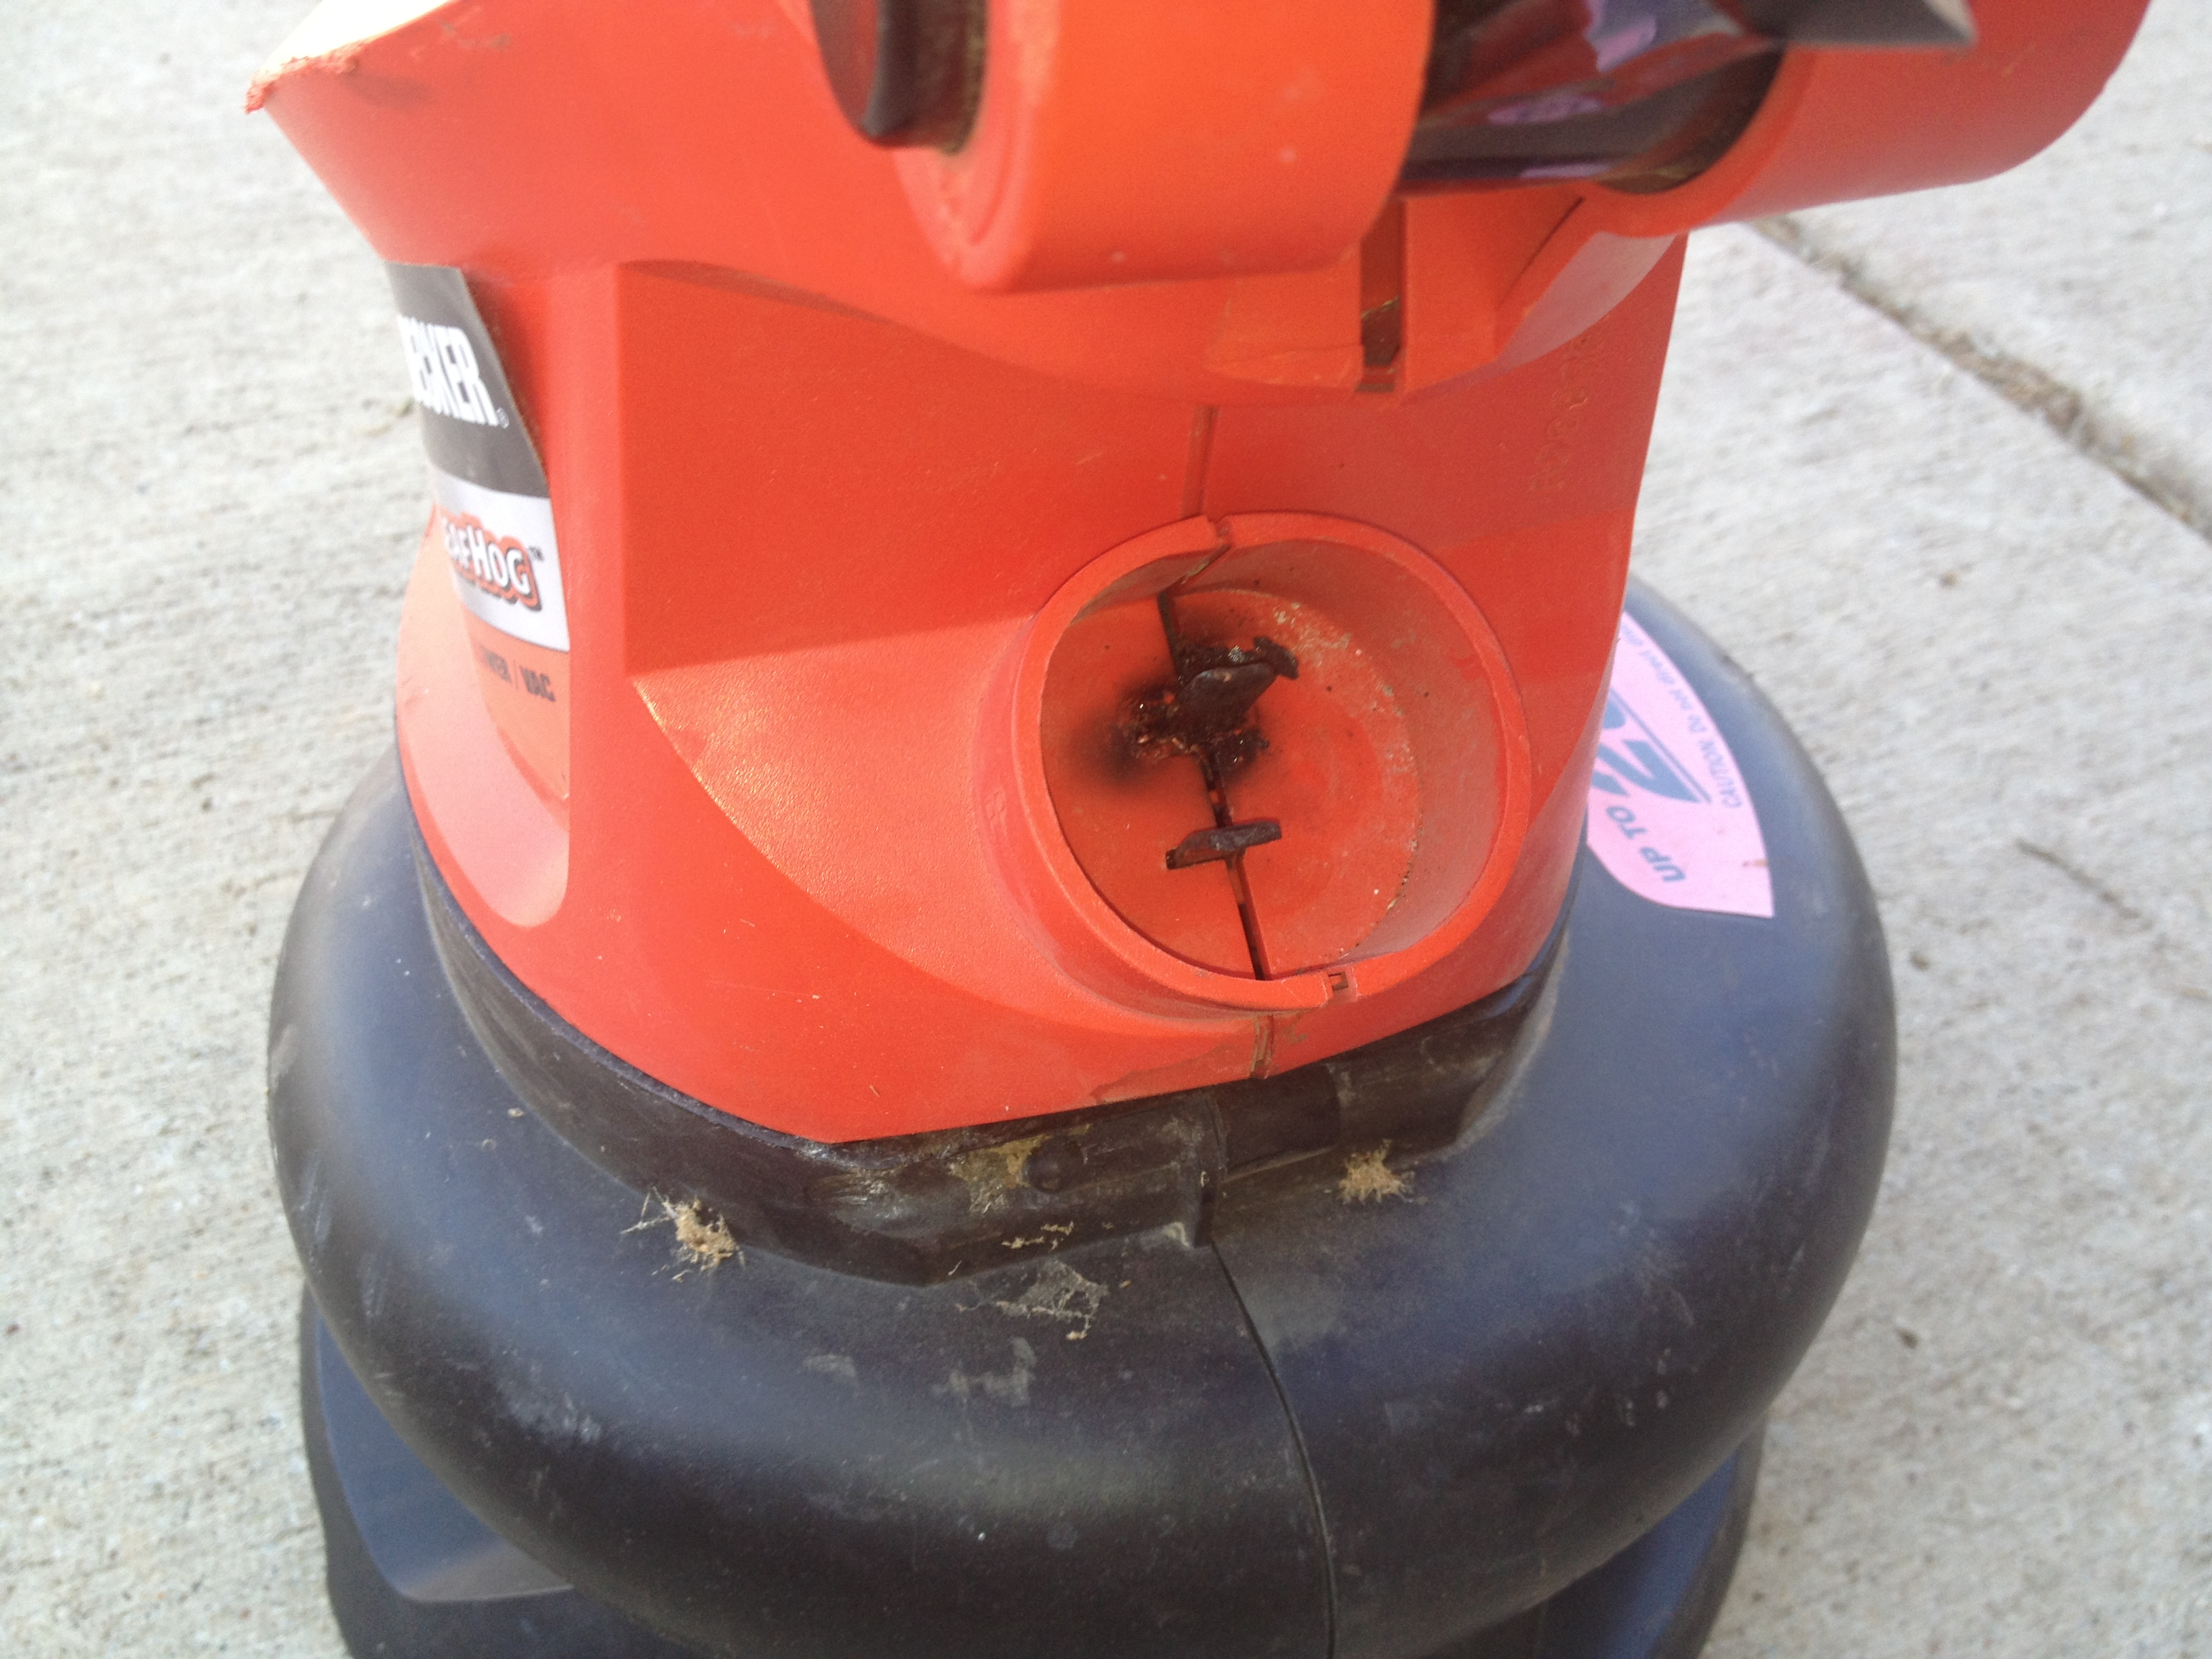 Picture of Rigging an Electric Leaf Blower Cord, That Almost Caught on Fire and Killed Me